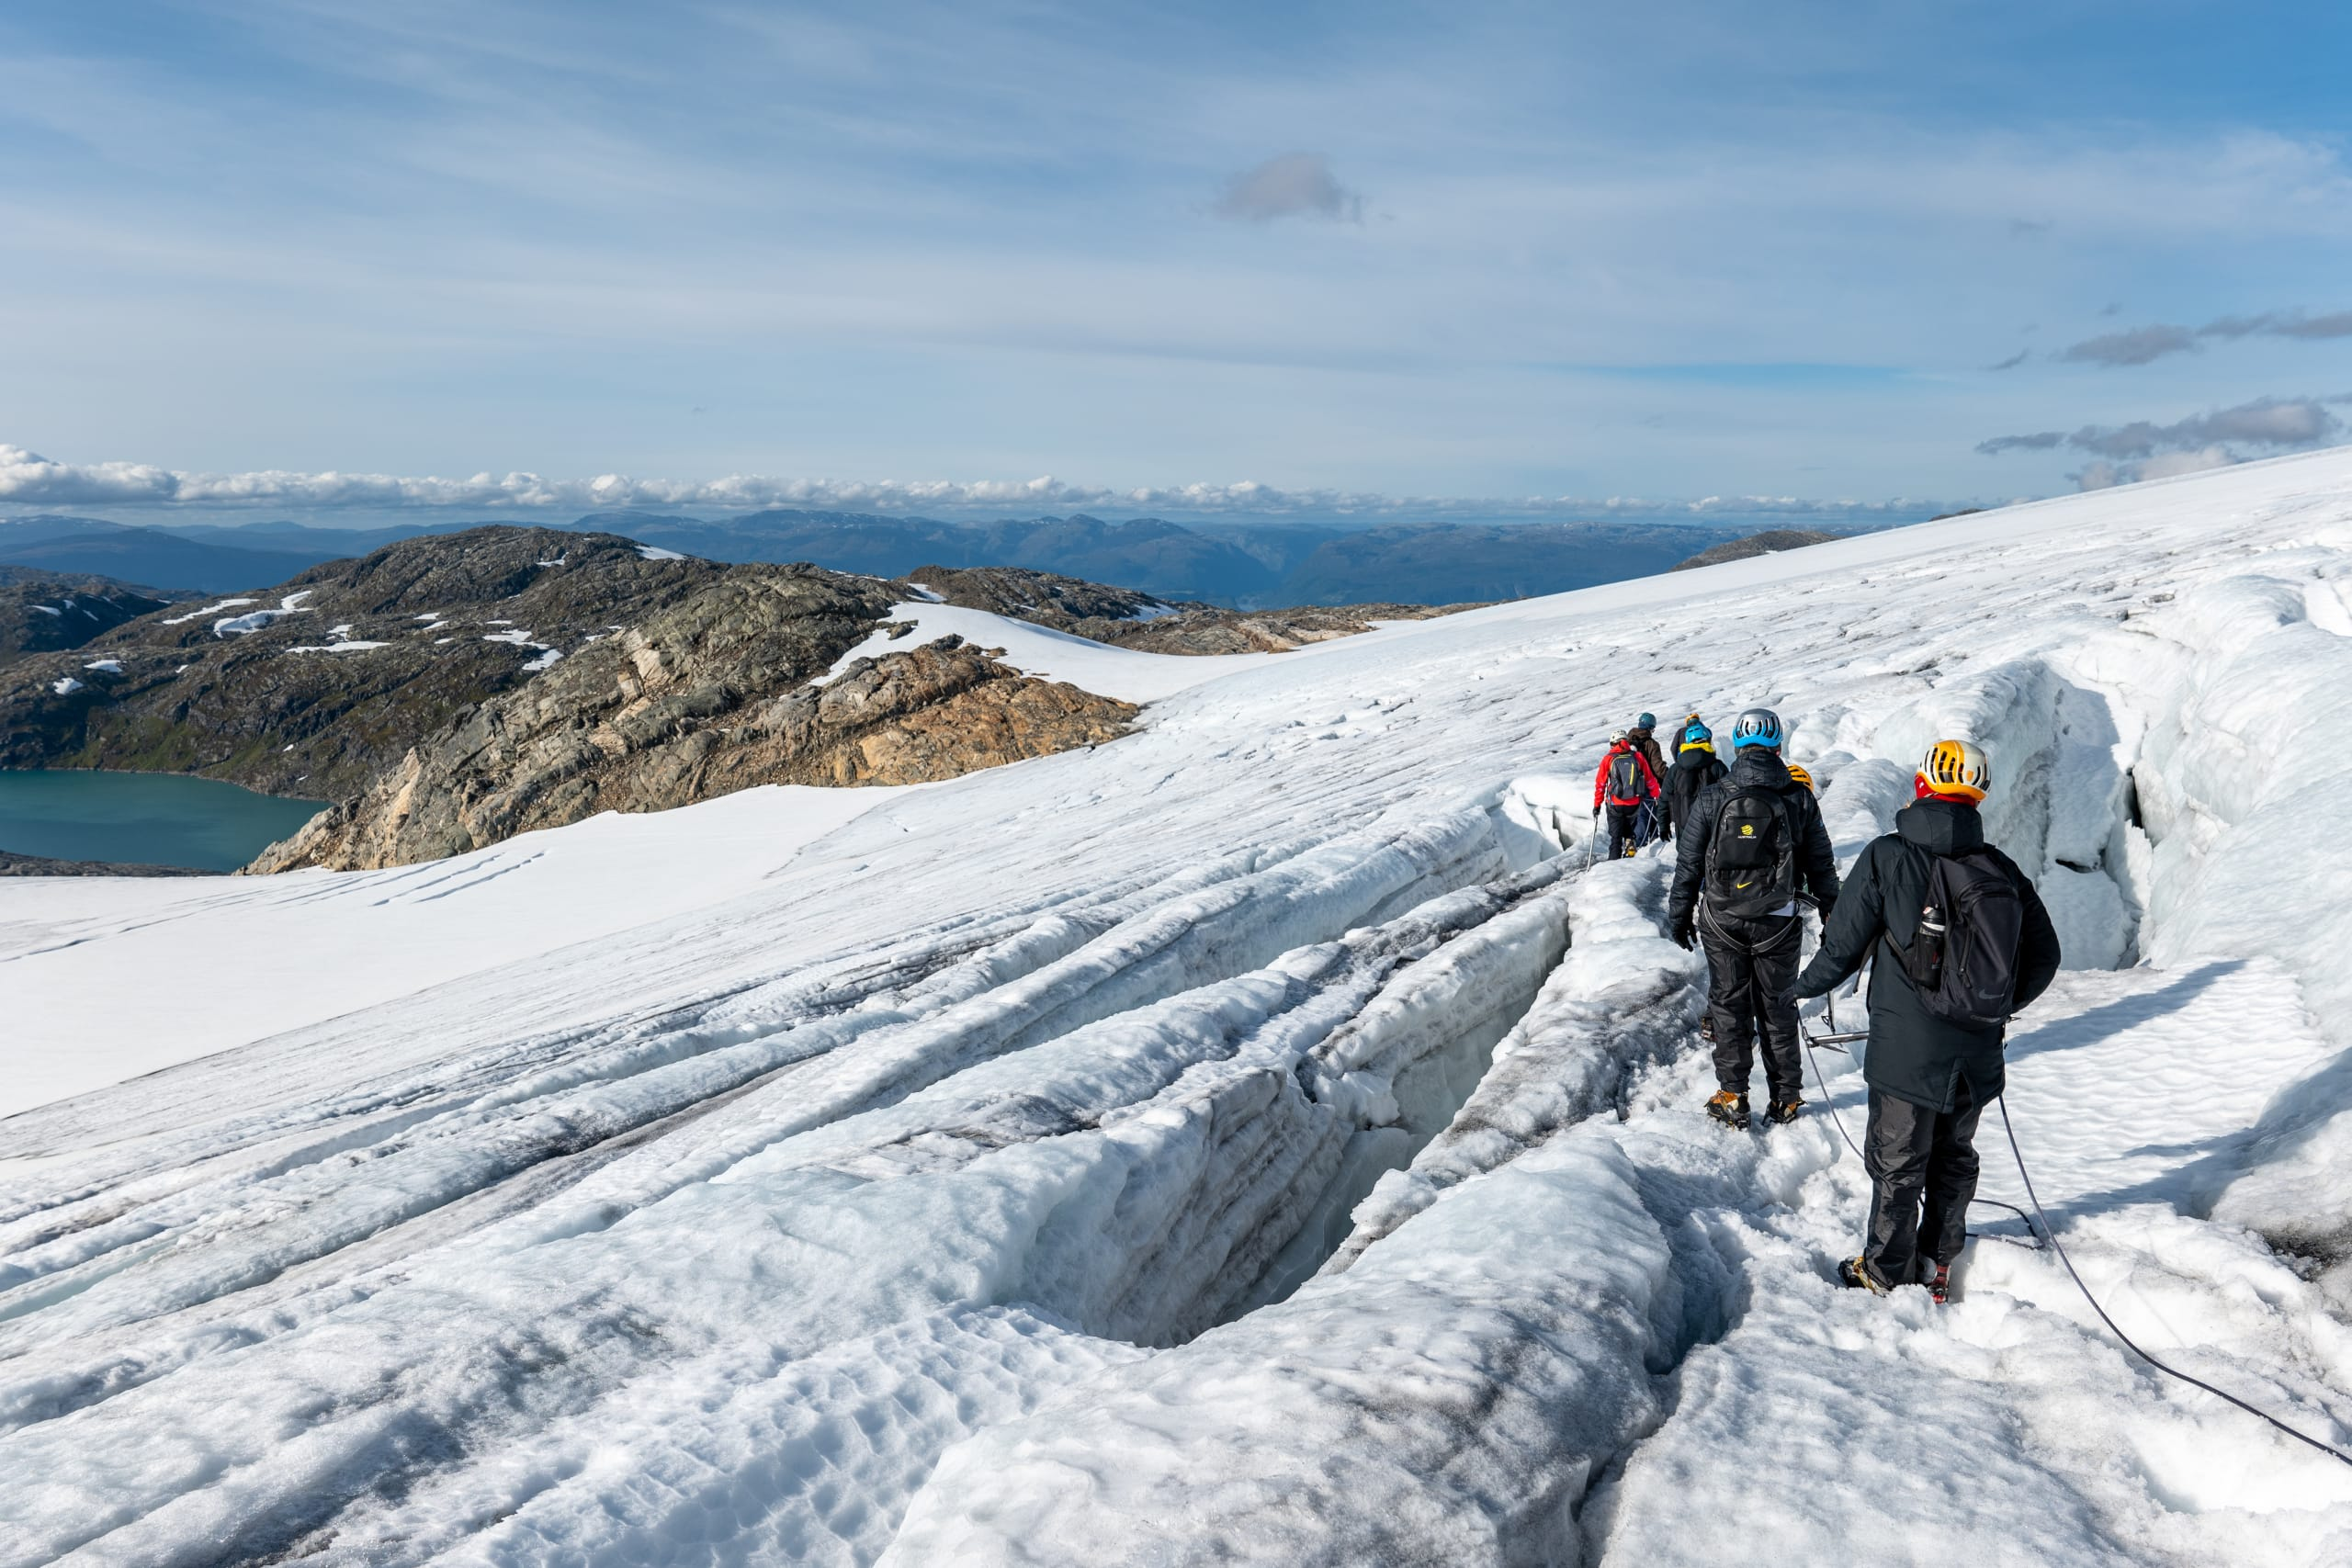 Hiking down in glacier crevasses